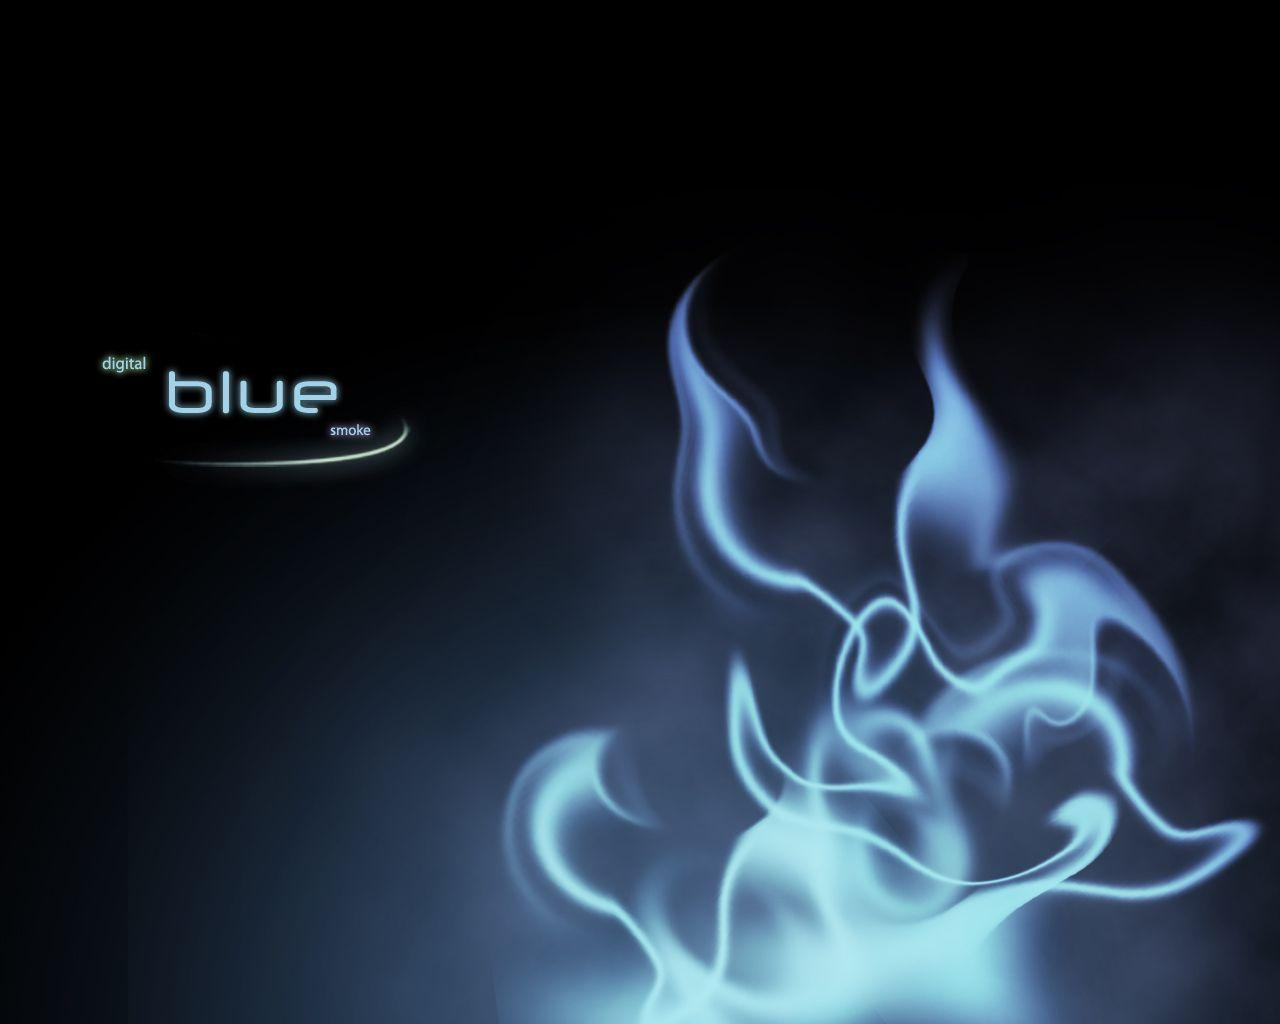 Blue Smoke Wallpapers 1280x1024